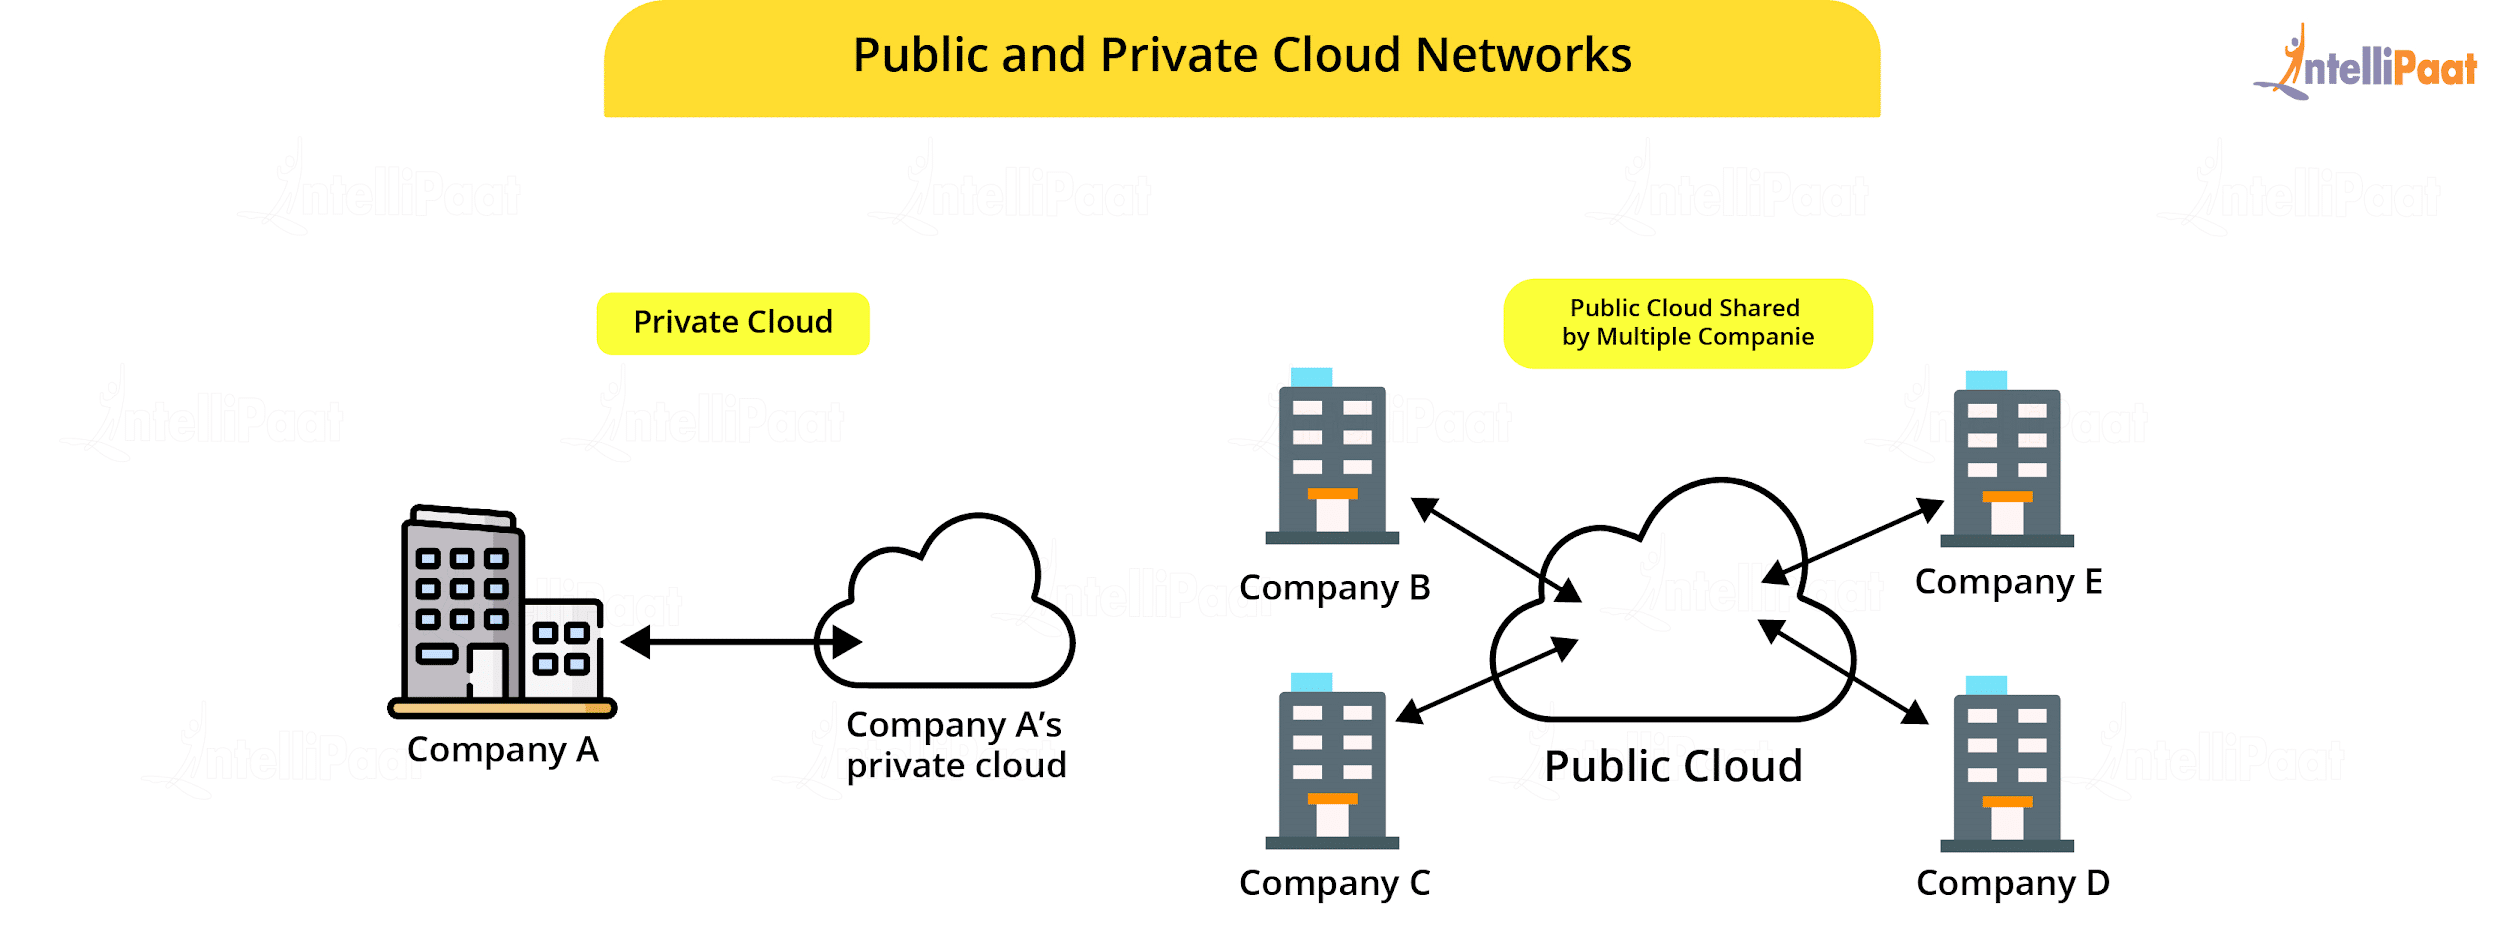 Public and Private Cloud Networks